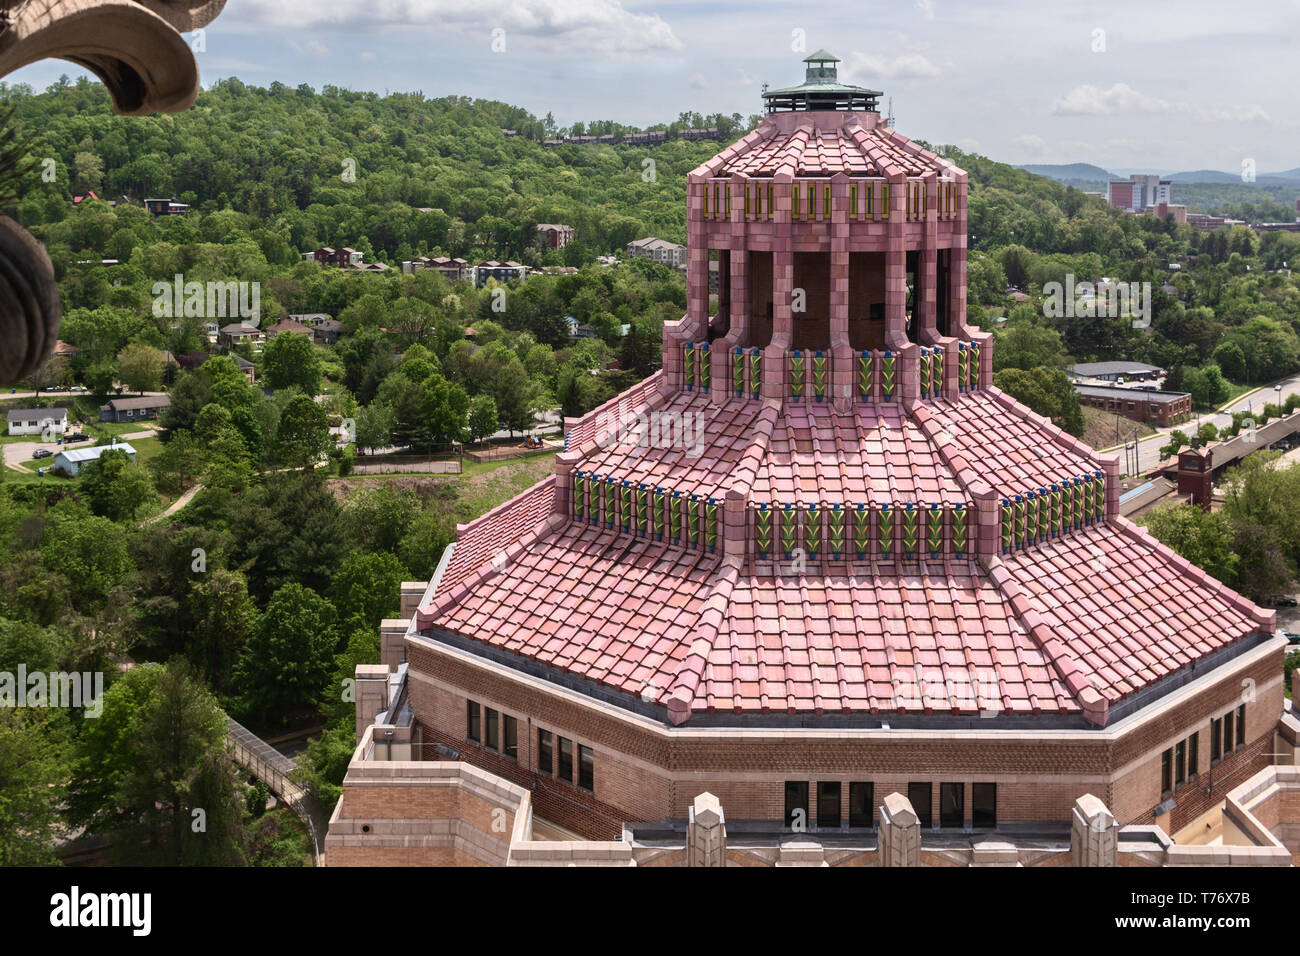 The rotunda of the City Building is captured from the federal courthouse, in Asheville, NC, USA - Stock Image